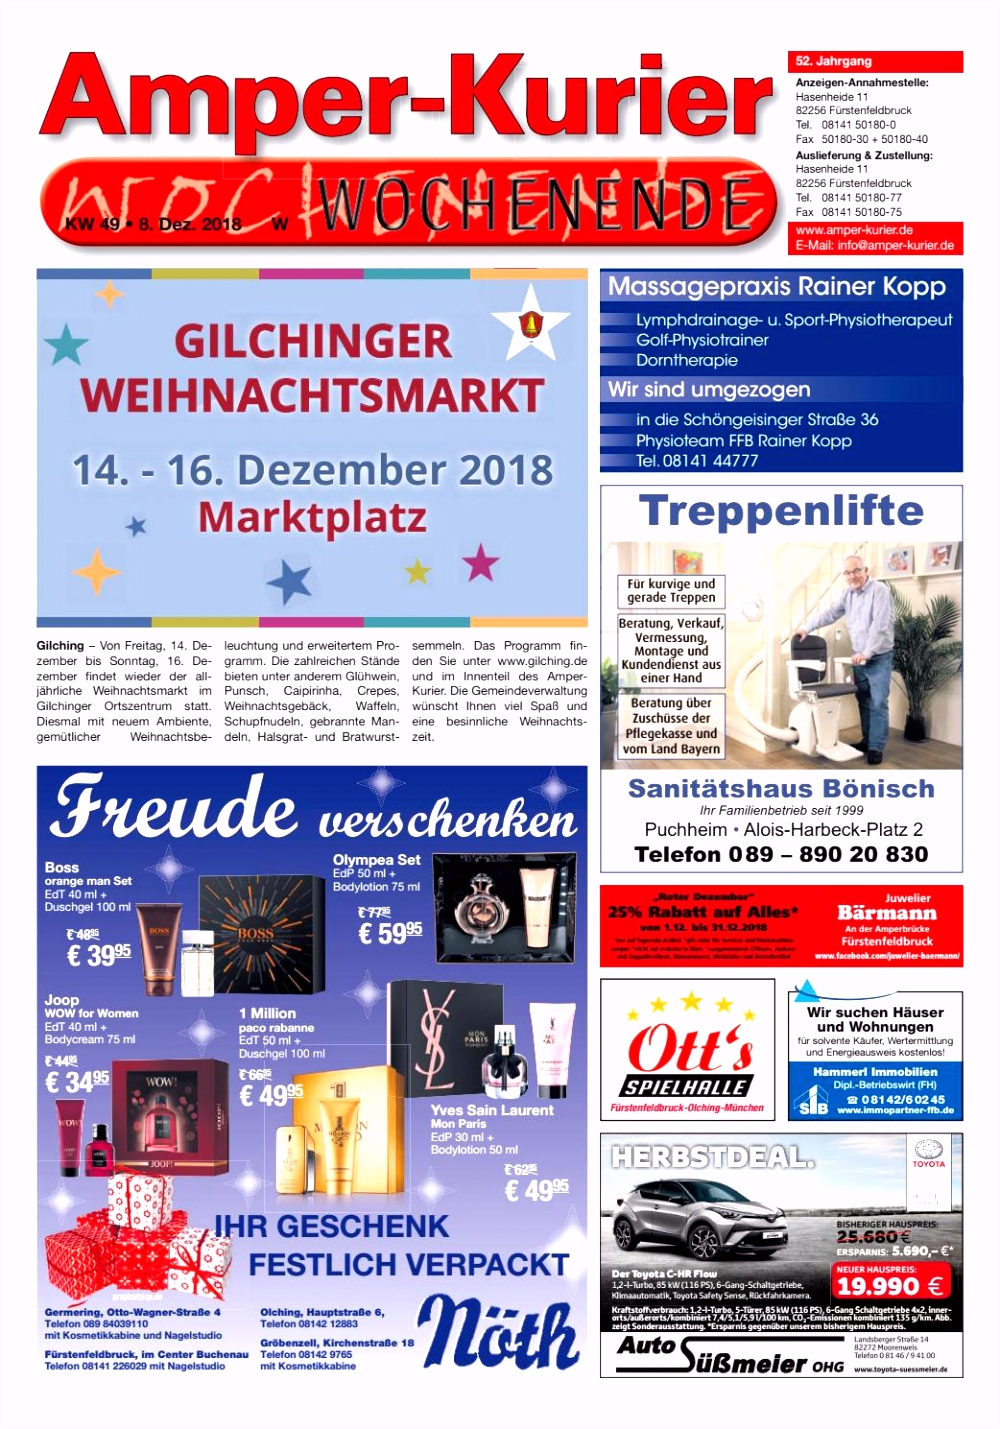 2018 49s Amper Kurier Sa 08 12 2018 by wolff me nberatung issuu